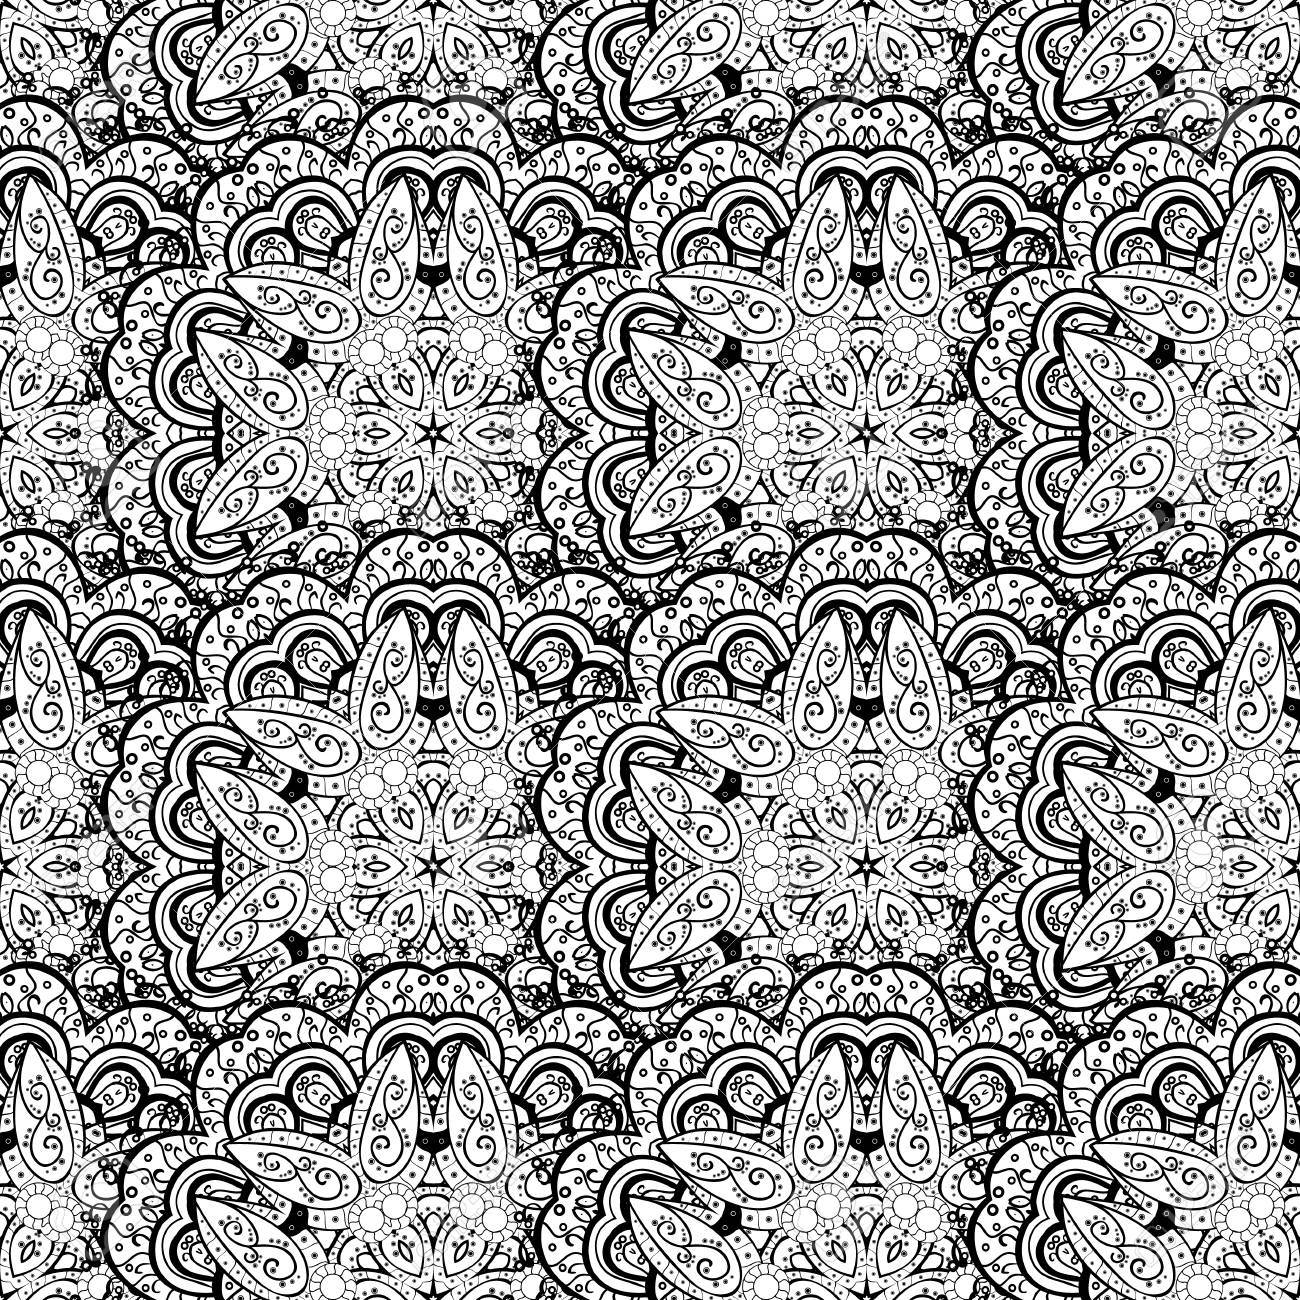 Seamless medieval floral royal pattern vector illustration seamless medieval floral royal pattern vector illustration decorative symmetry arabesque good for greeting stopboris Image collections